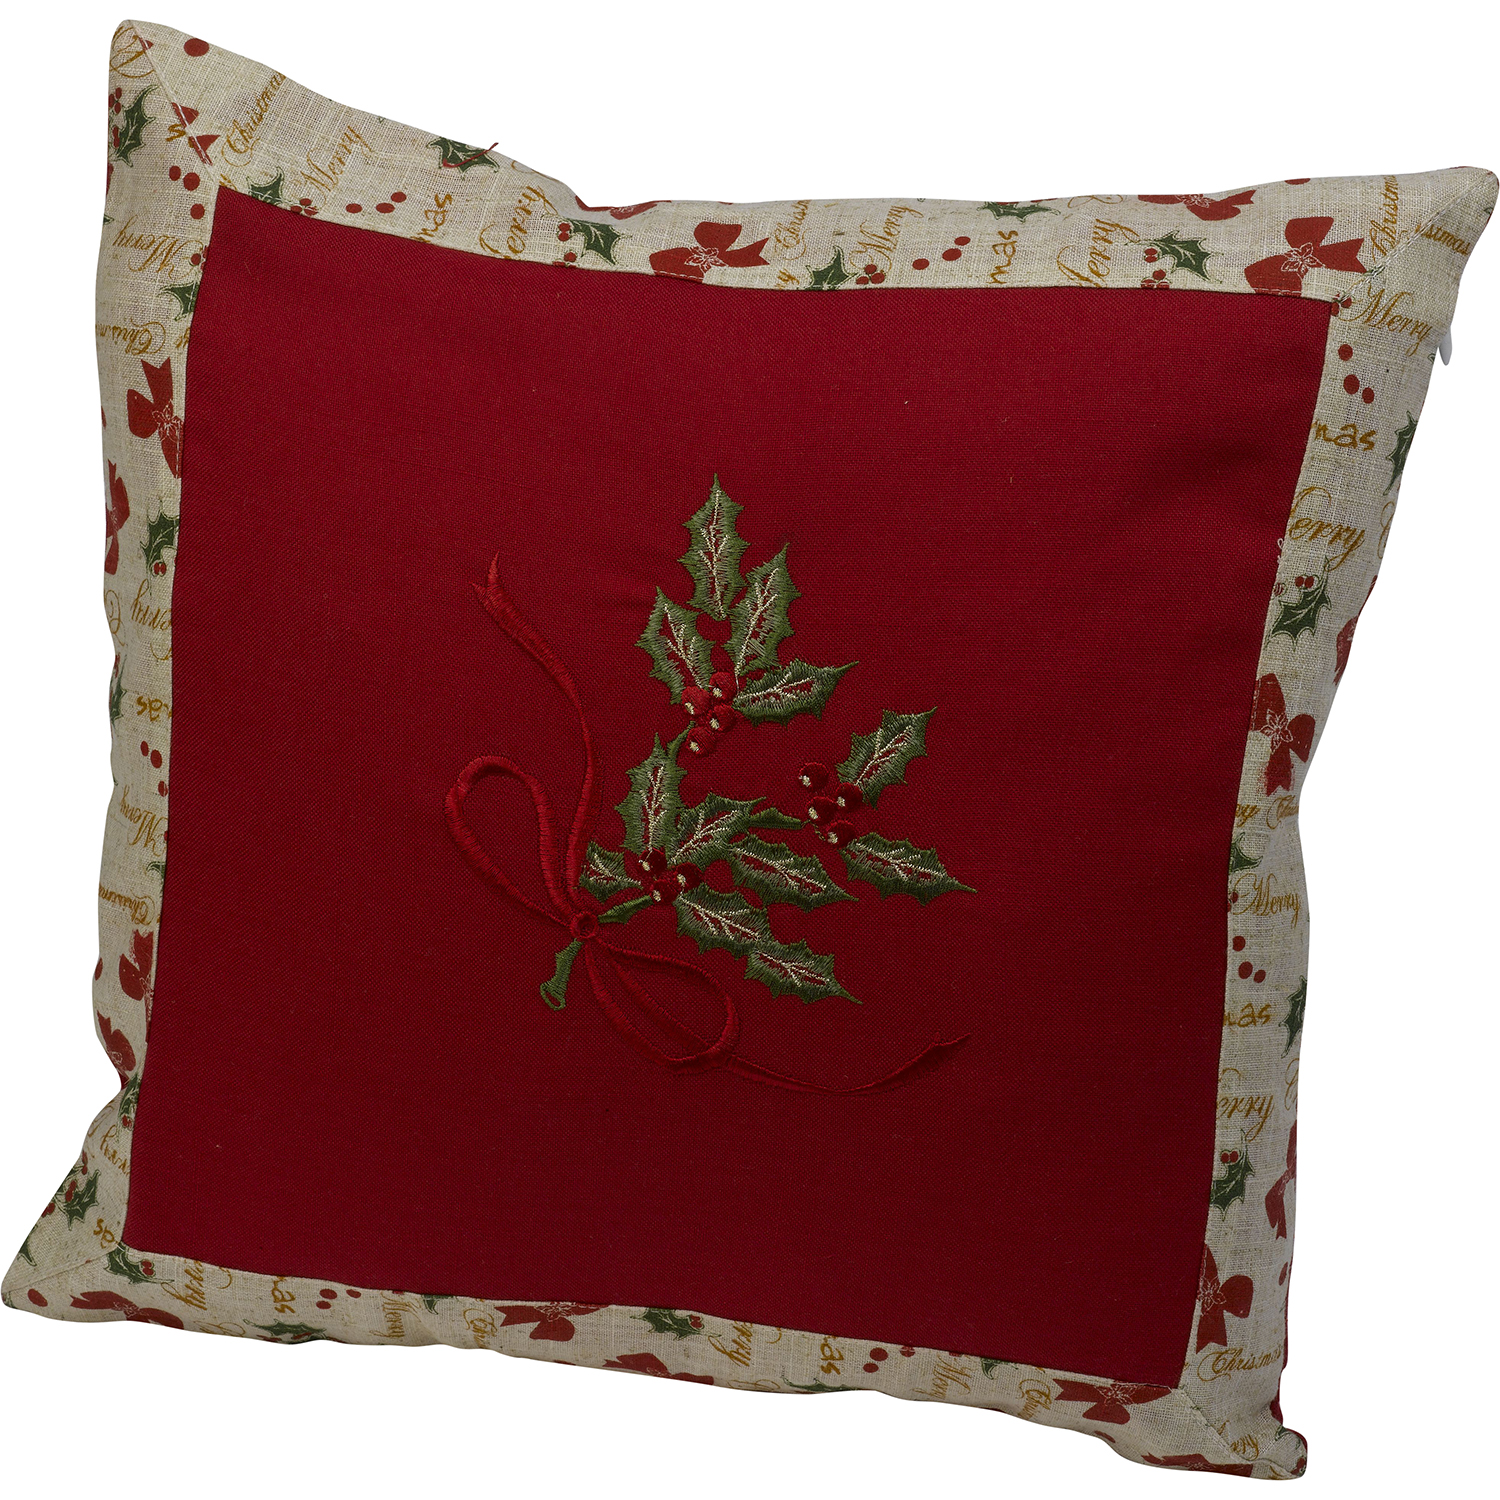 "% Polyester embroidered cushion cover with zipper closure. Size 18"" X 18"